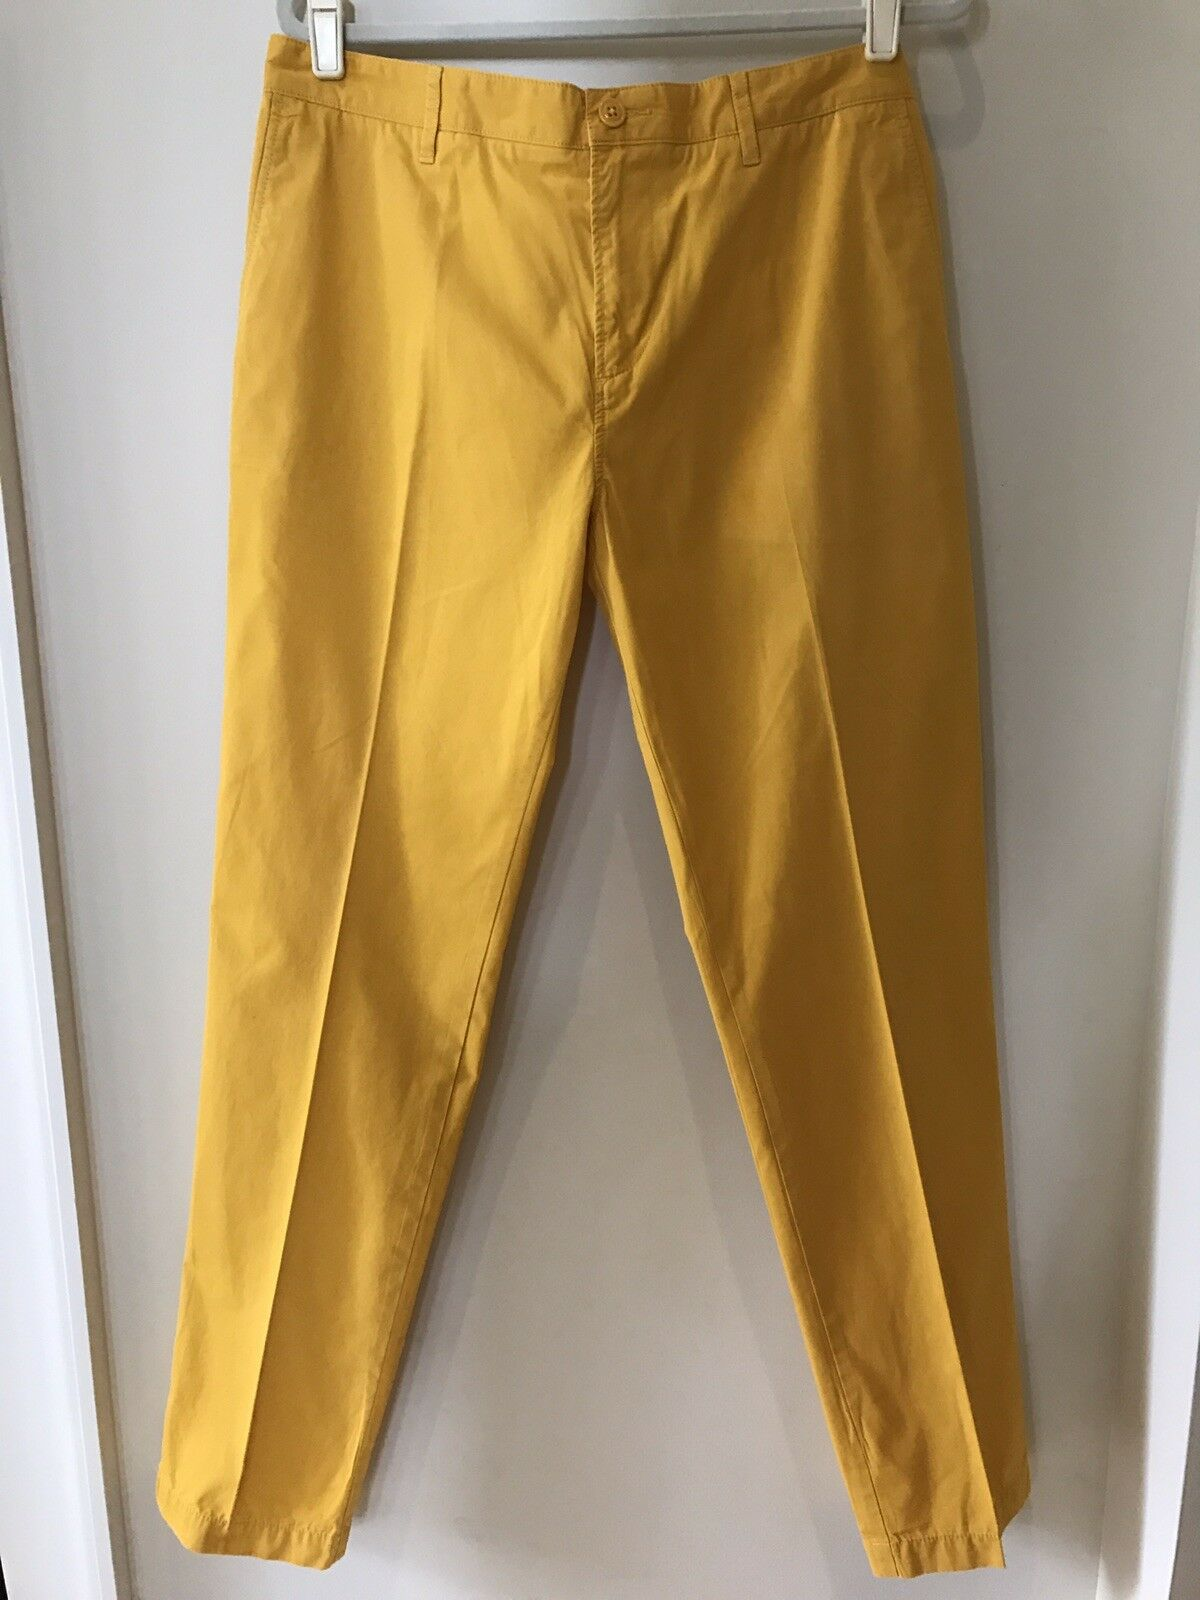 Lacoste Mustard Yellow Regular Fit Pants